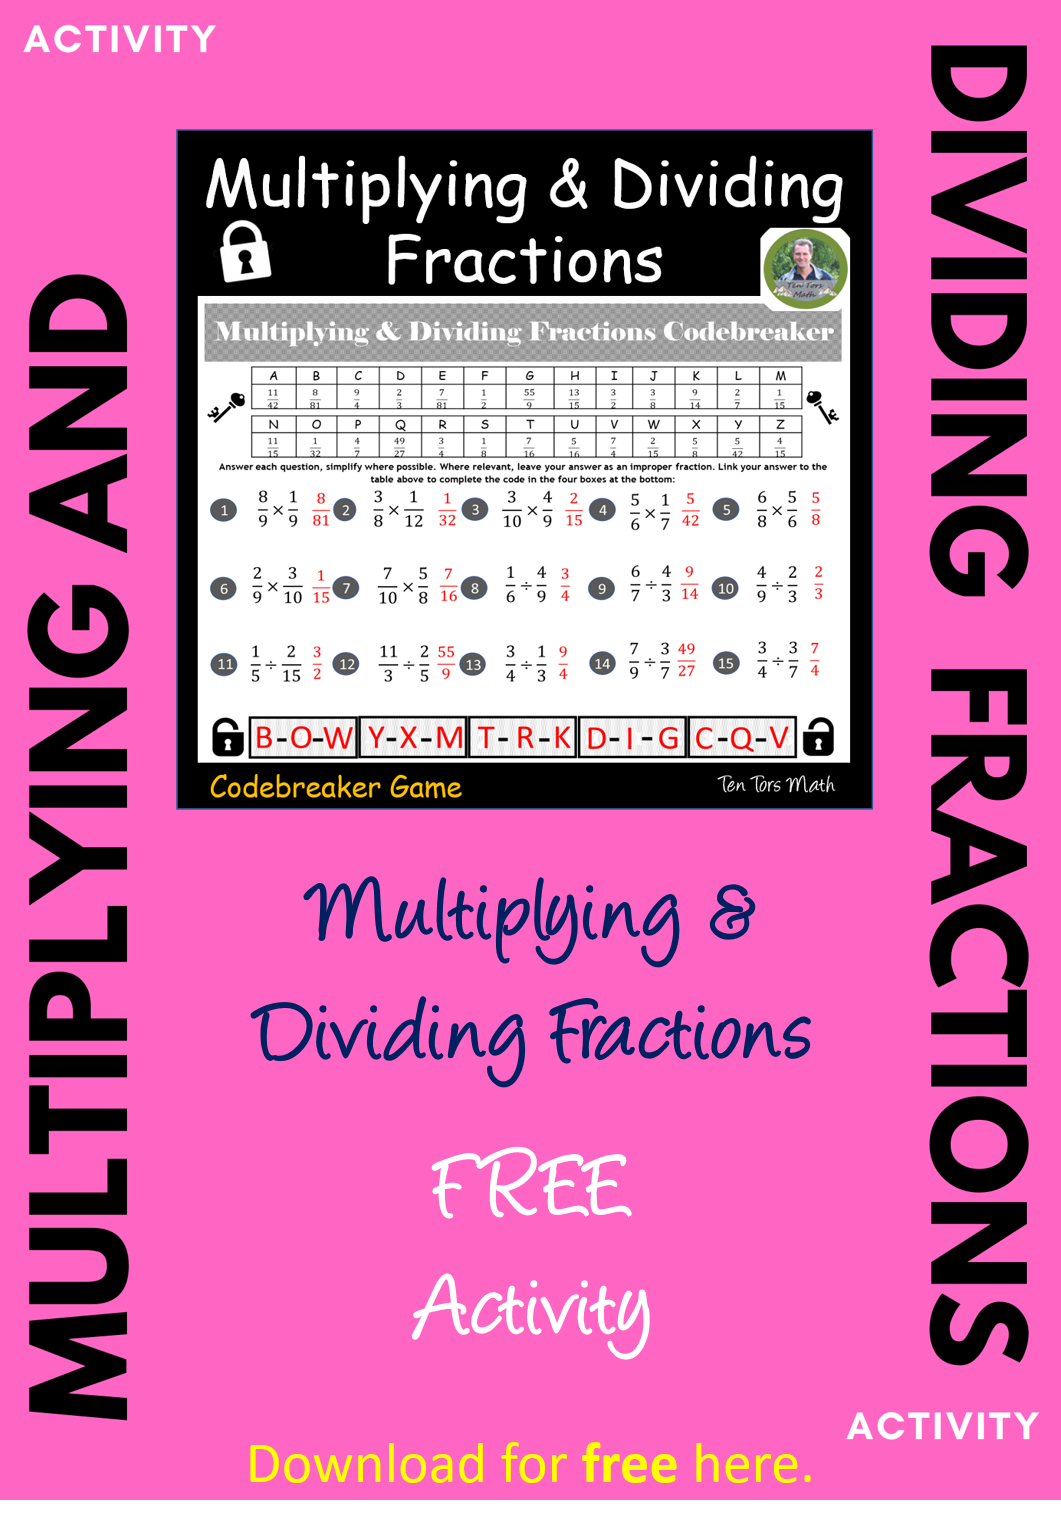 Multiplying And Dividing Fractions Free Activity